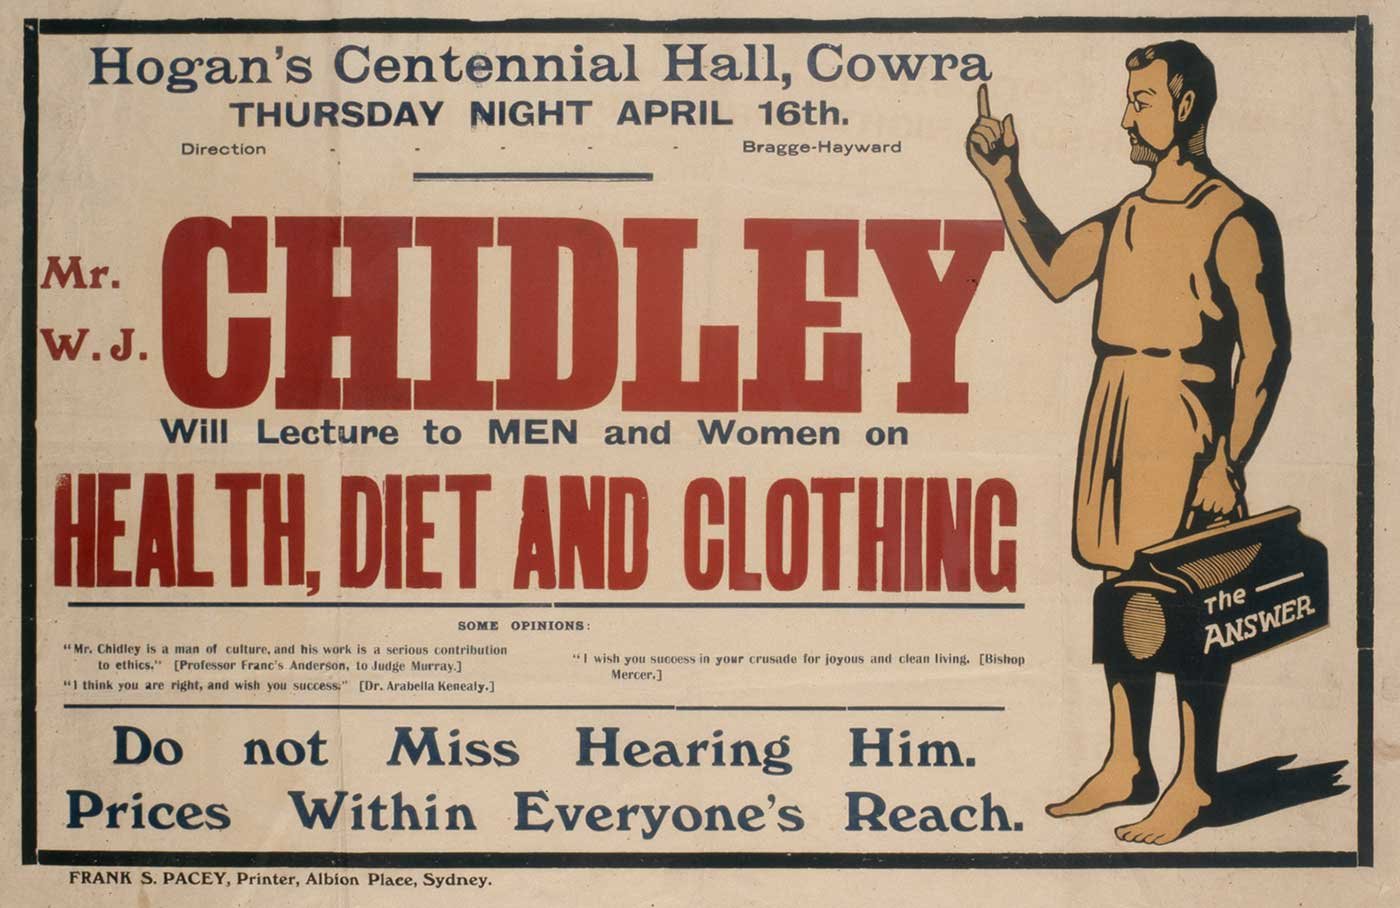 Poster advertising William Chidley's lecture on 'health, diet and clothing'. Text is printed beside an illustration of a man holding a medical bag inscribed 'The Answer'.